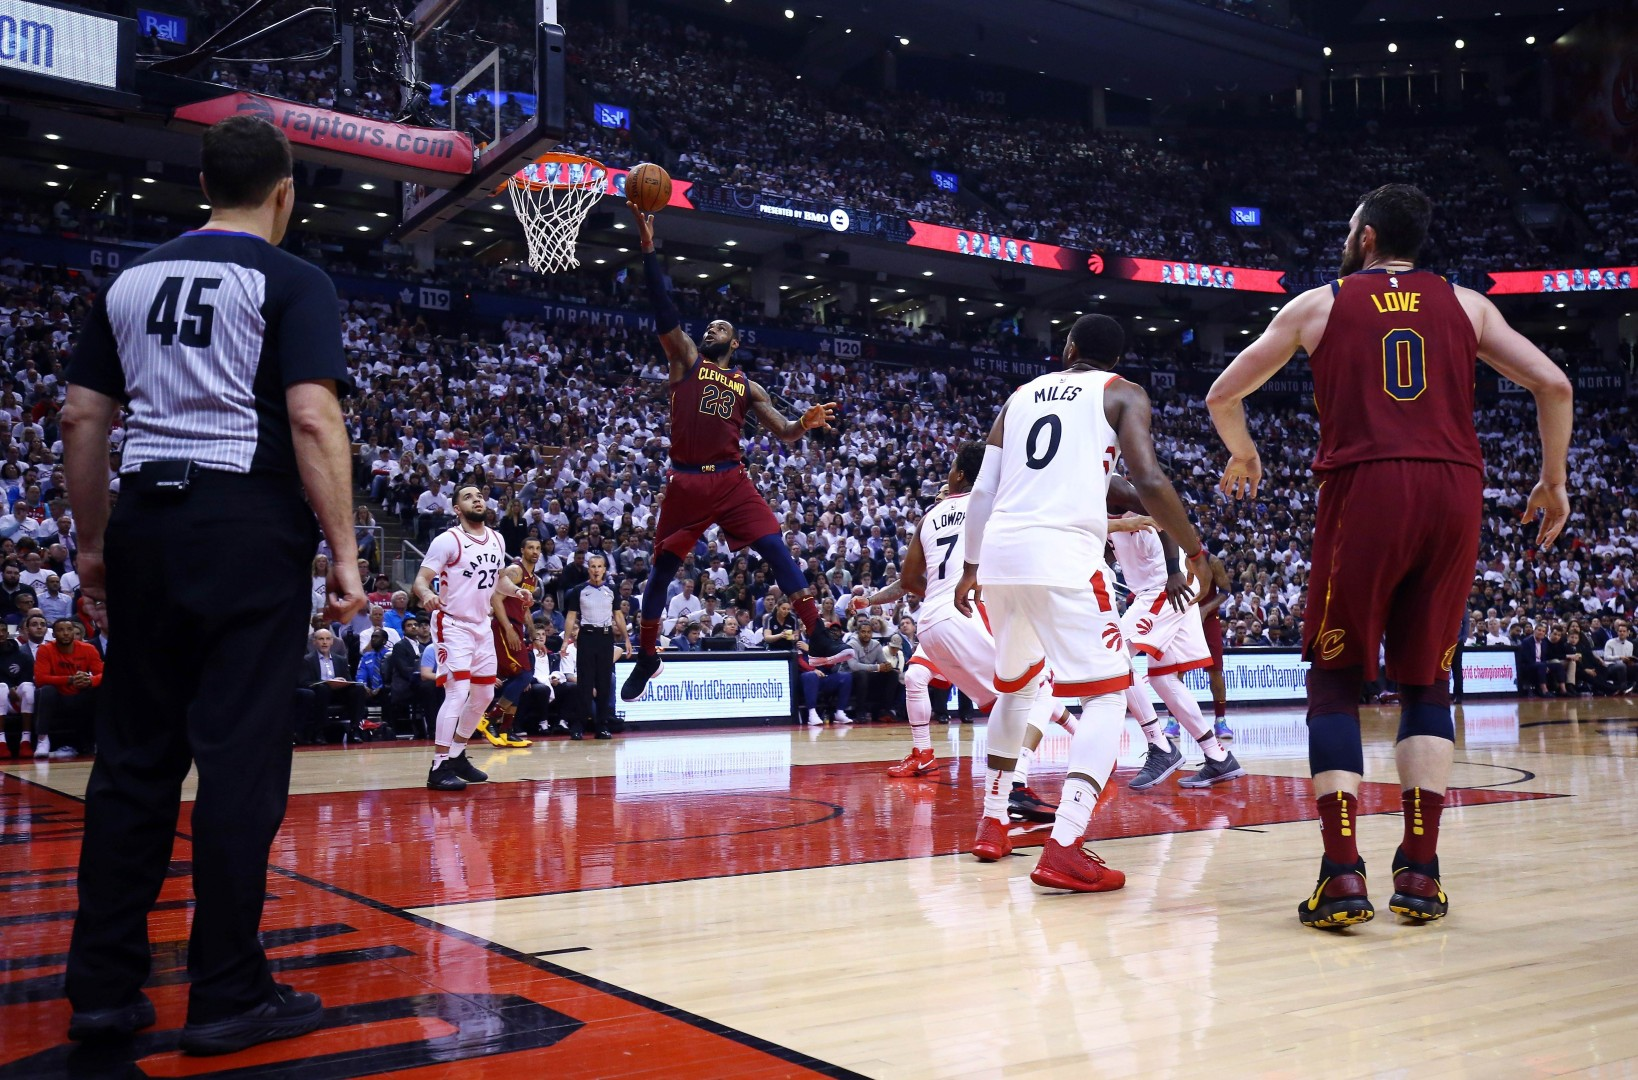 bb8fcacae2a Unstoppable LeBron James on fire as Cleveland Cavaliers top Toronto Raptors  to take firm grip on NBA play-off series | South China Morning Post